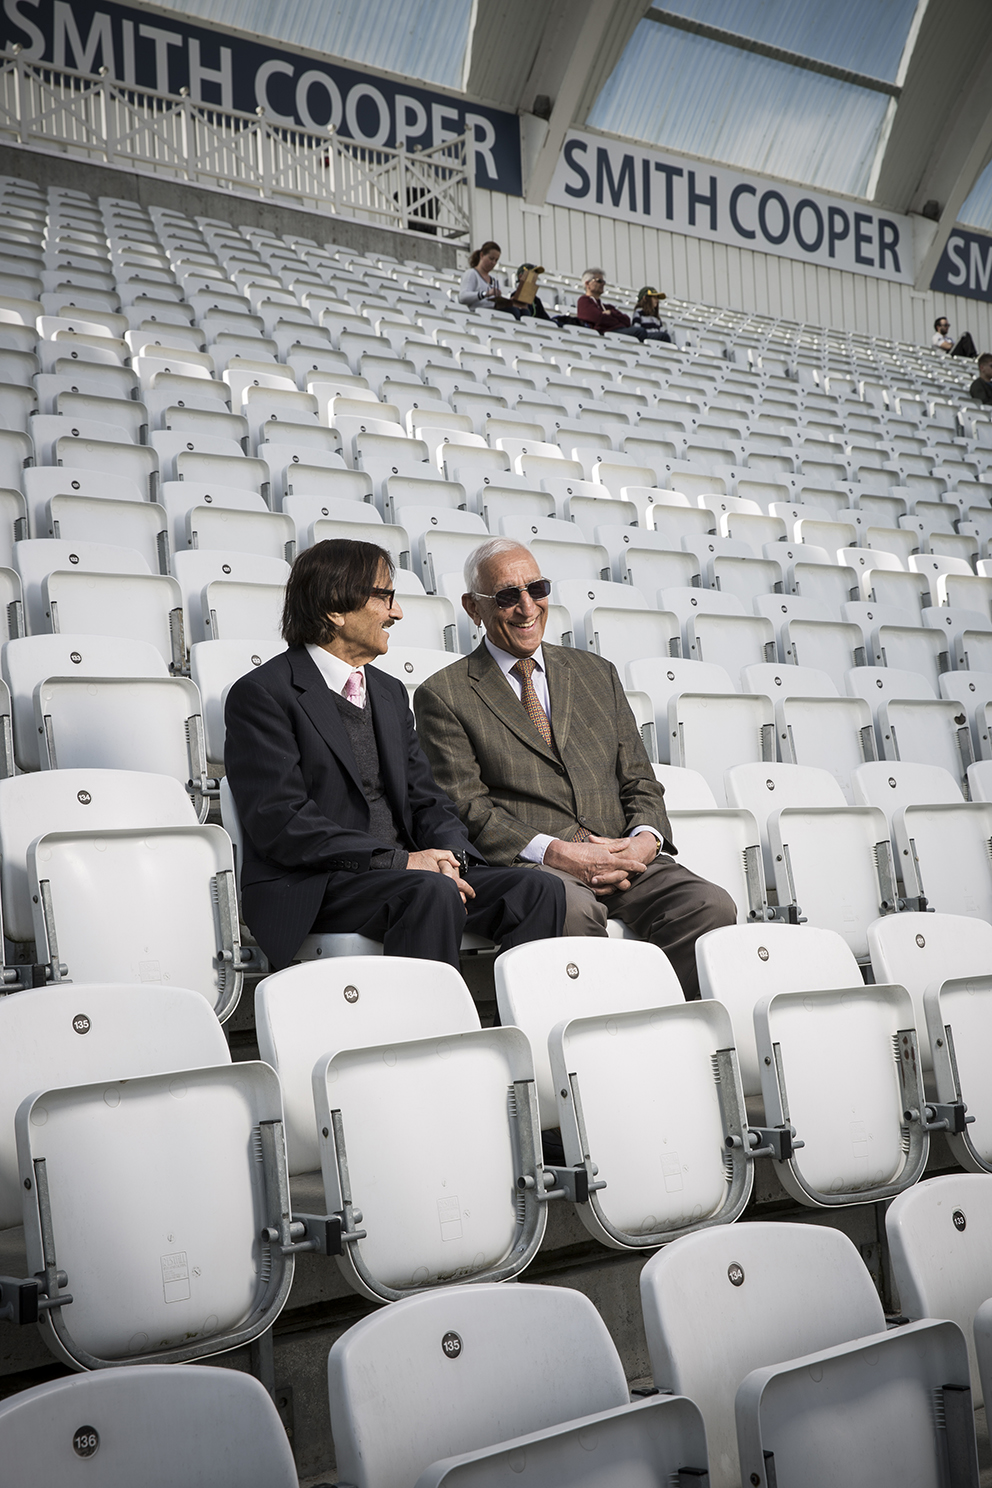 Aslam Lone and Mohammed Irshad enjoying the cricket at Trent Bridge, shot for the Two's Company feature for the Guradian Weekend